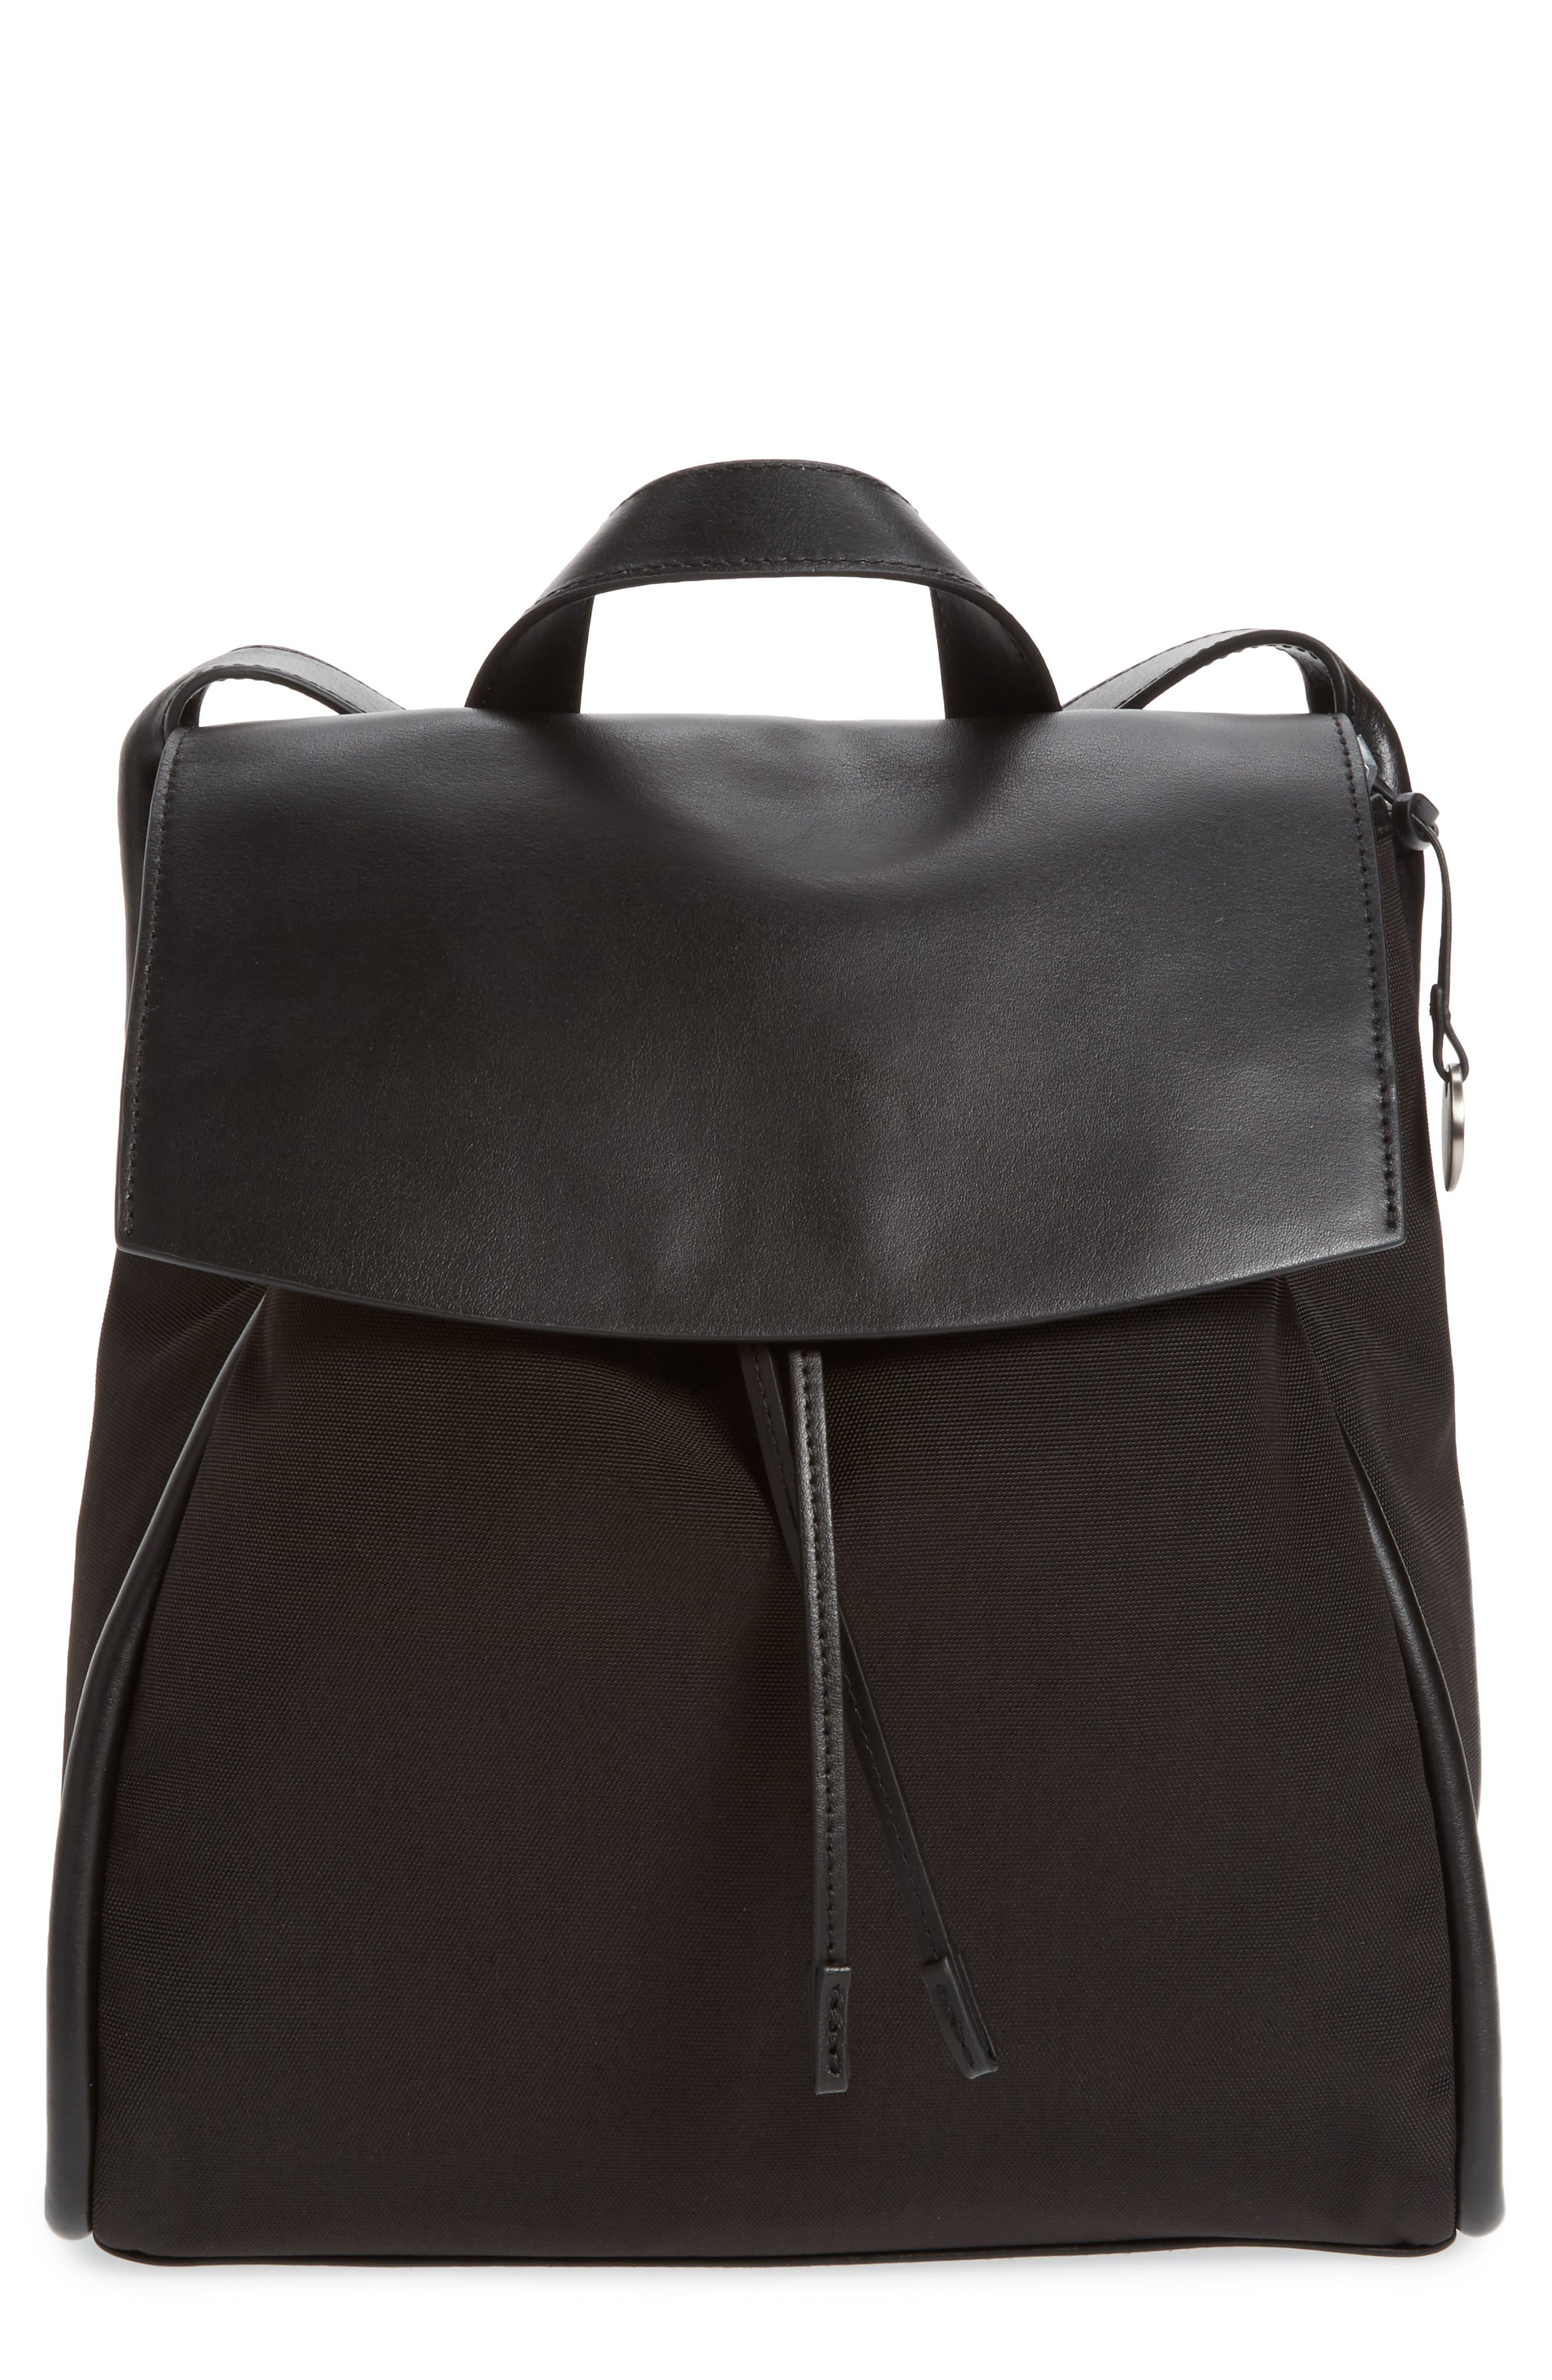 Ebba Leather Backpack,                             Main thumbnail 1, color,                             Black